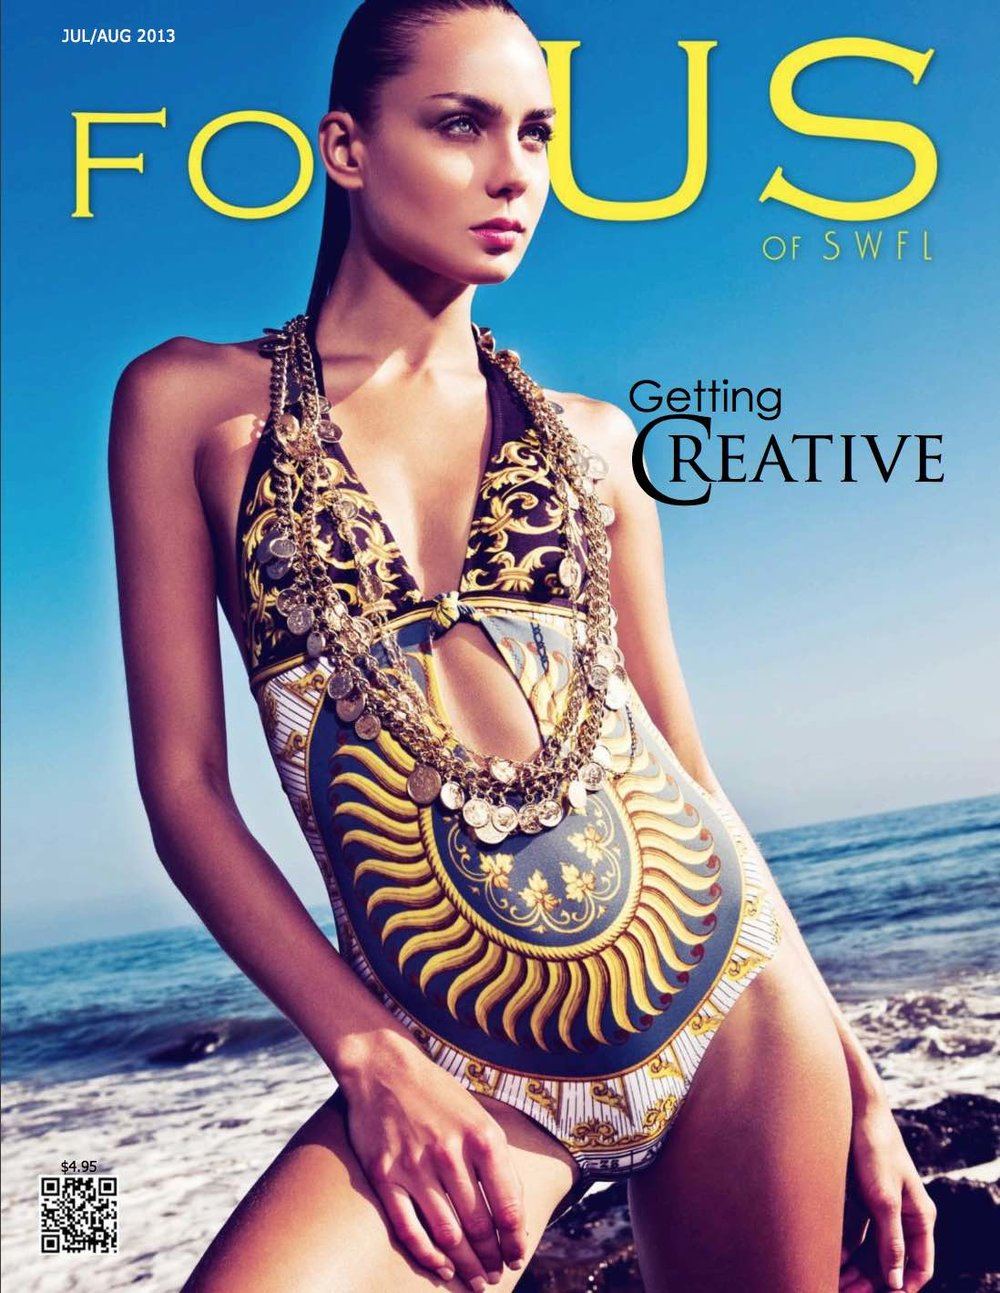 Focus of SWFL - Getting Creative   Published on Jun 30, 2013  A muse of everything inspired and unexpected, this issue is about the many ways people show the world their inspirational intellect. A visual journey of extraordinary and artistic personalities; from areas in entertainment, business, art, fashion, design and more. Chuck full of engaging details with informative niceties about finance, home, cooking and your lifestyle. Click to see the feature on Ms. Indrea Gordon.